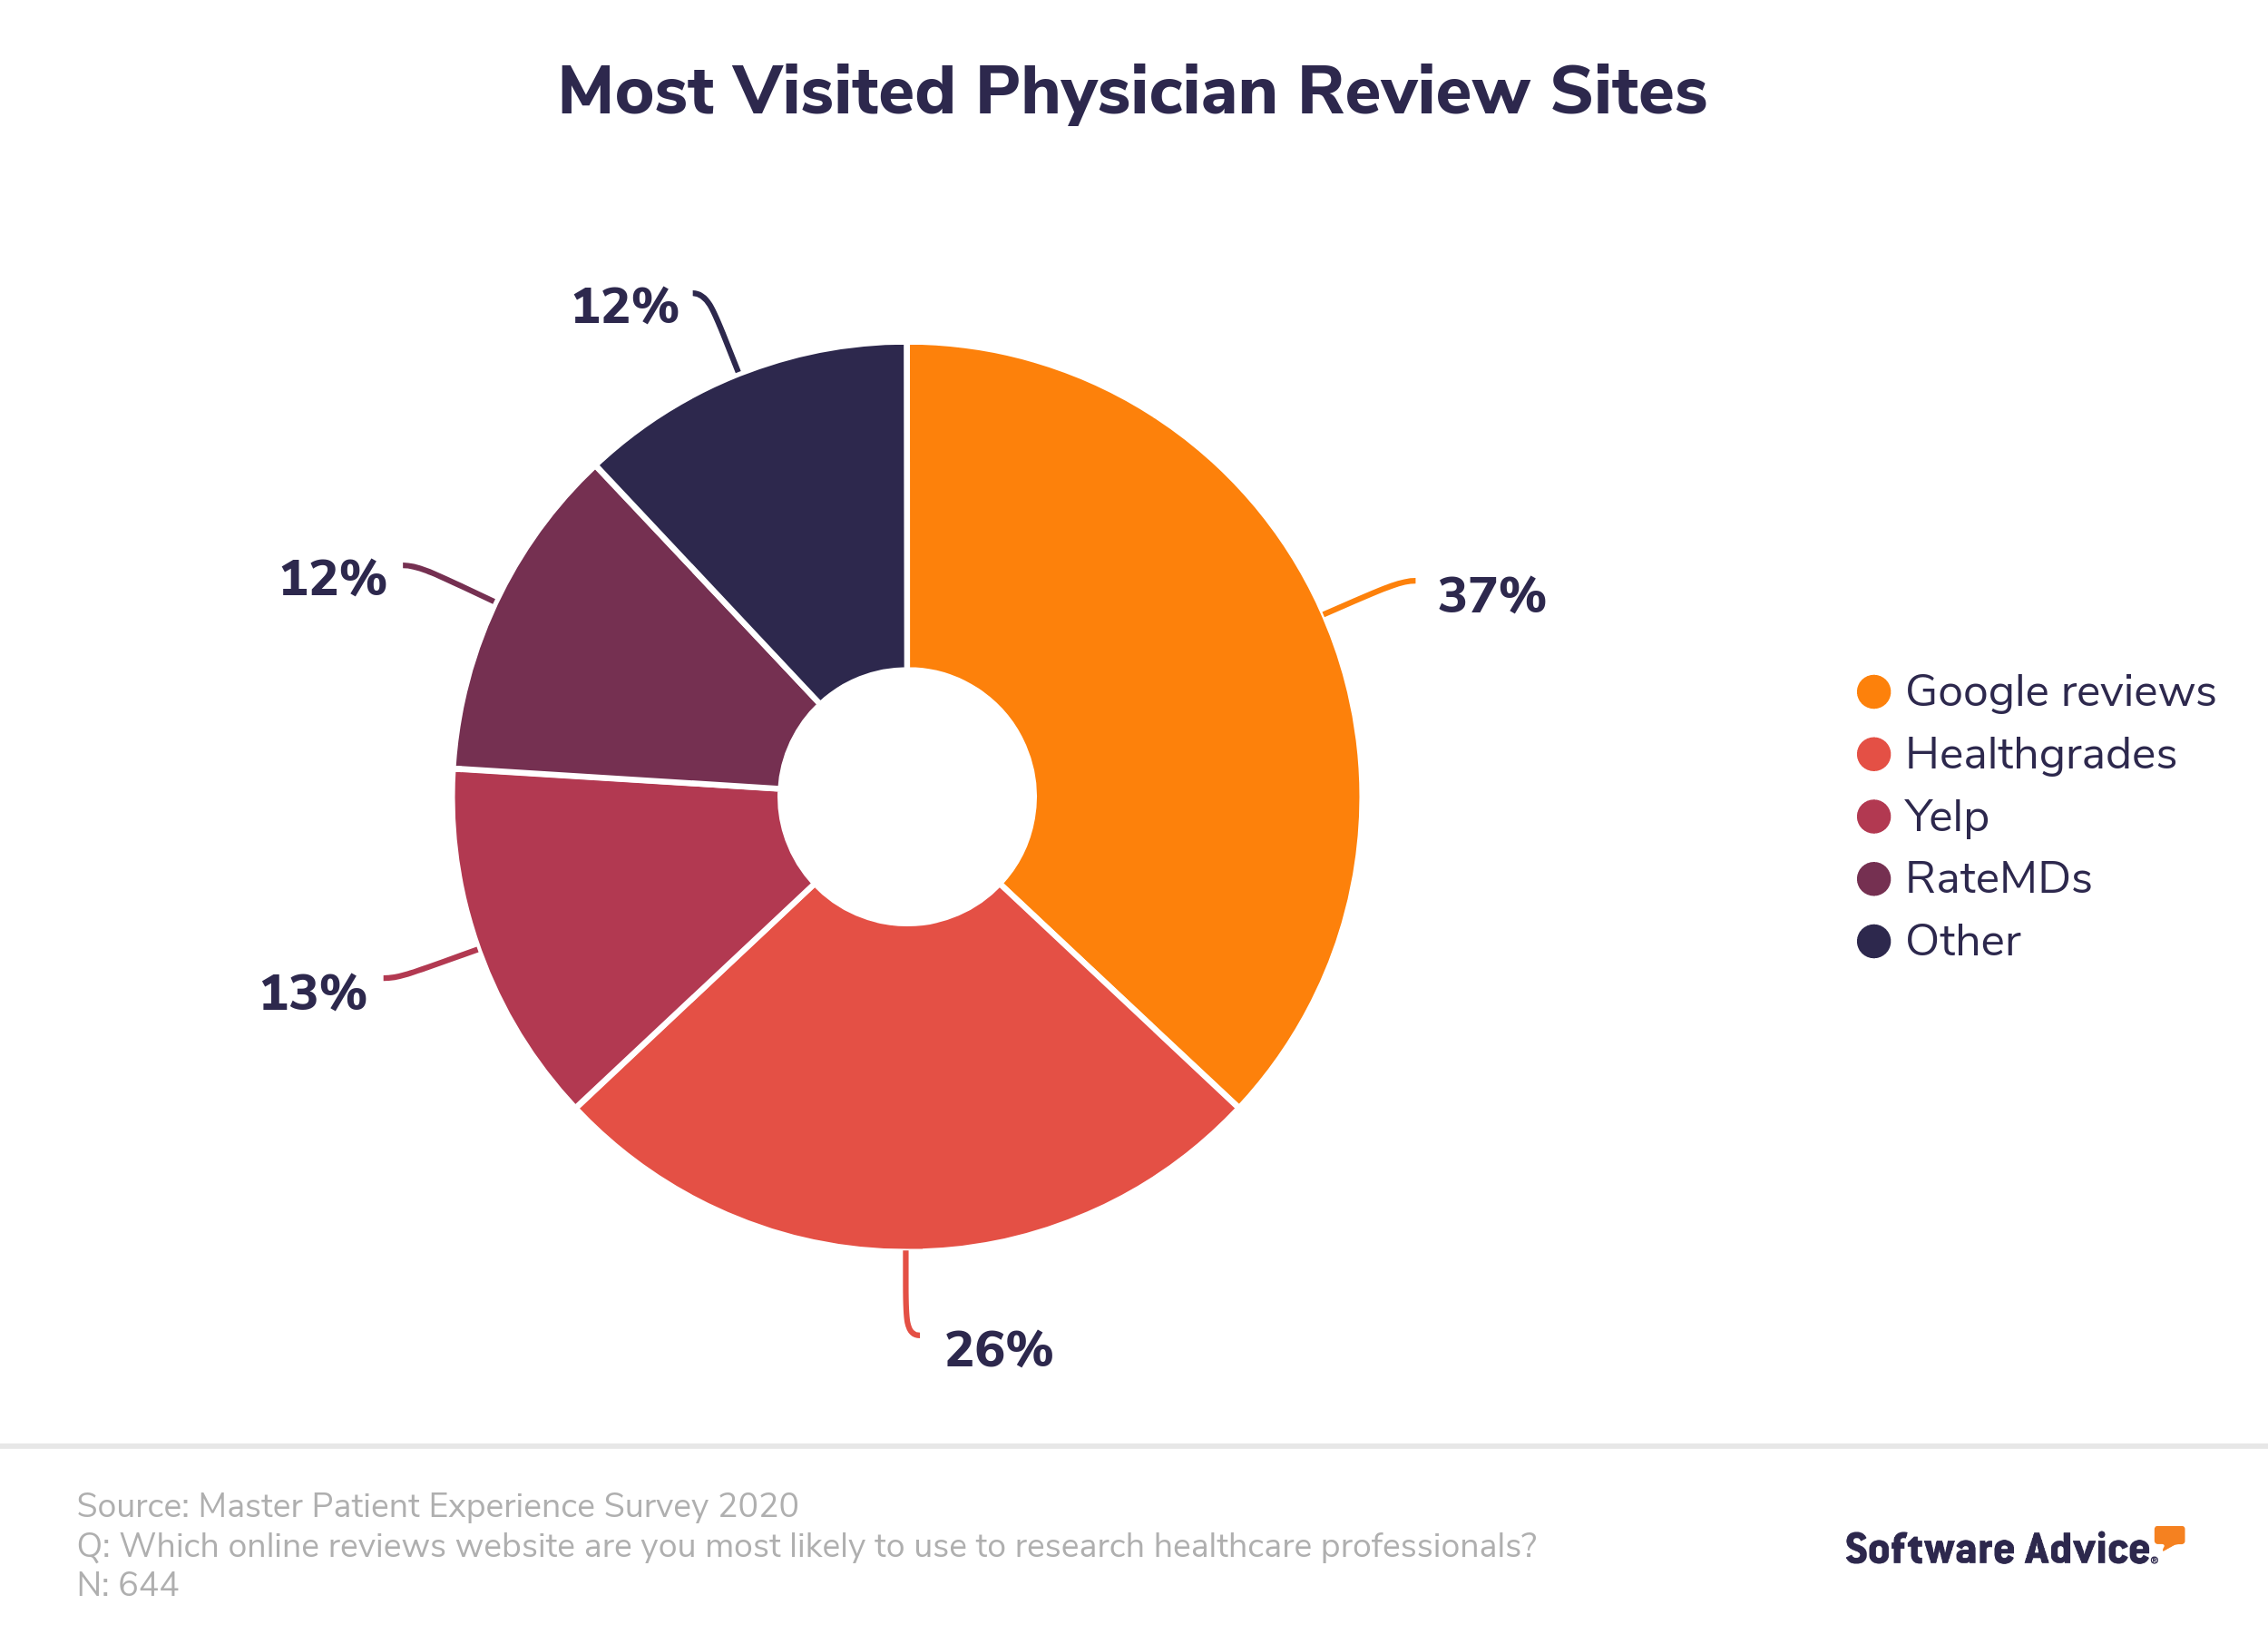 Most visited physician review sites